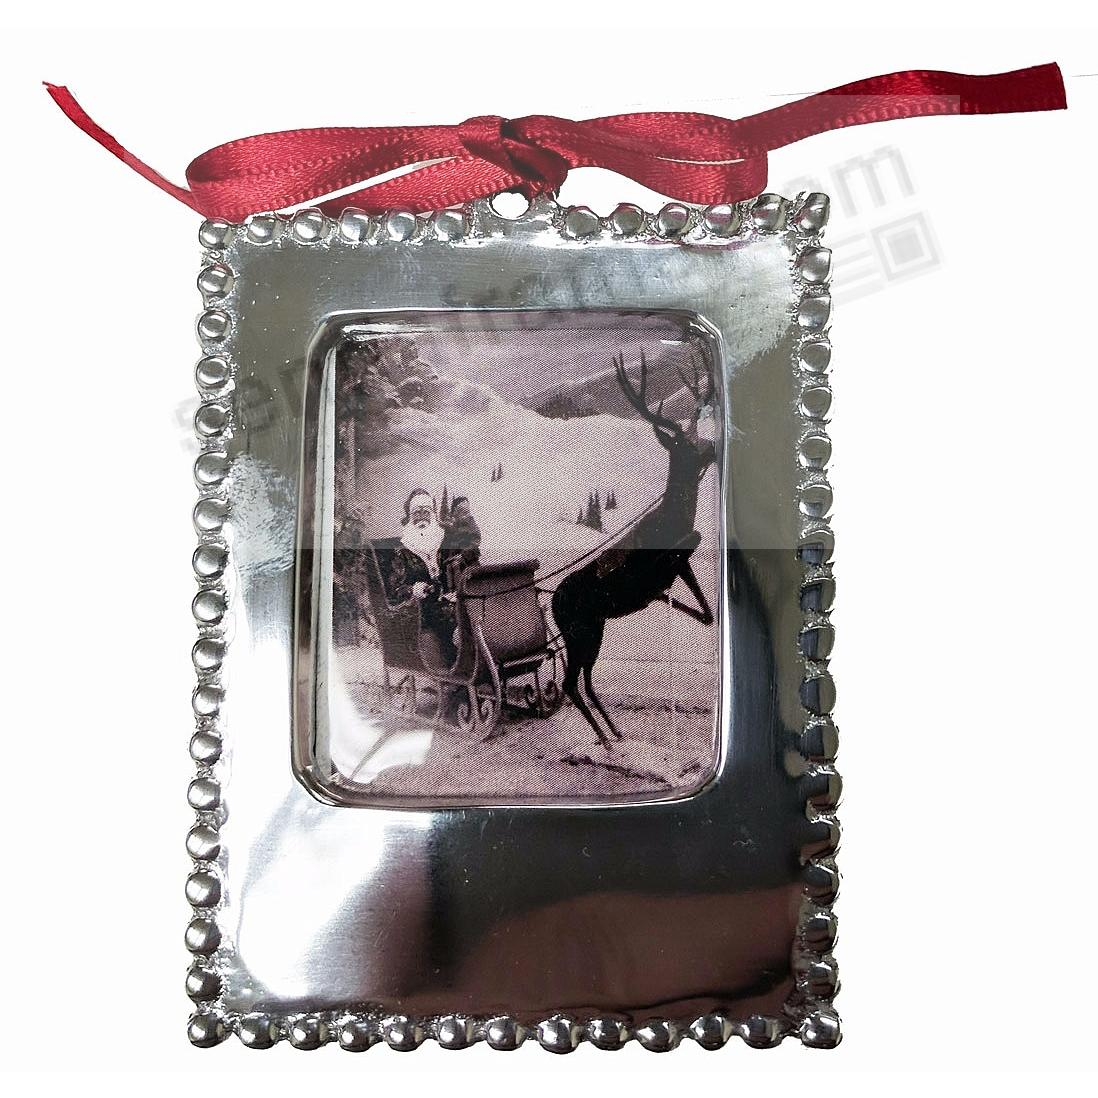 The original BLANK STATEMENT ORNAMENT 2x3 frame by Mariposa® ... Beautifully Engraveable!